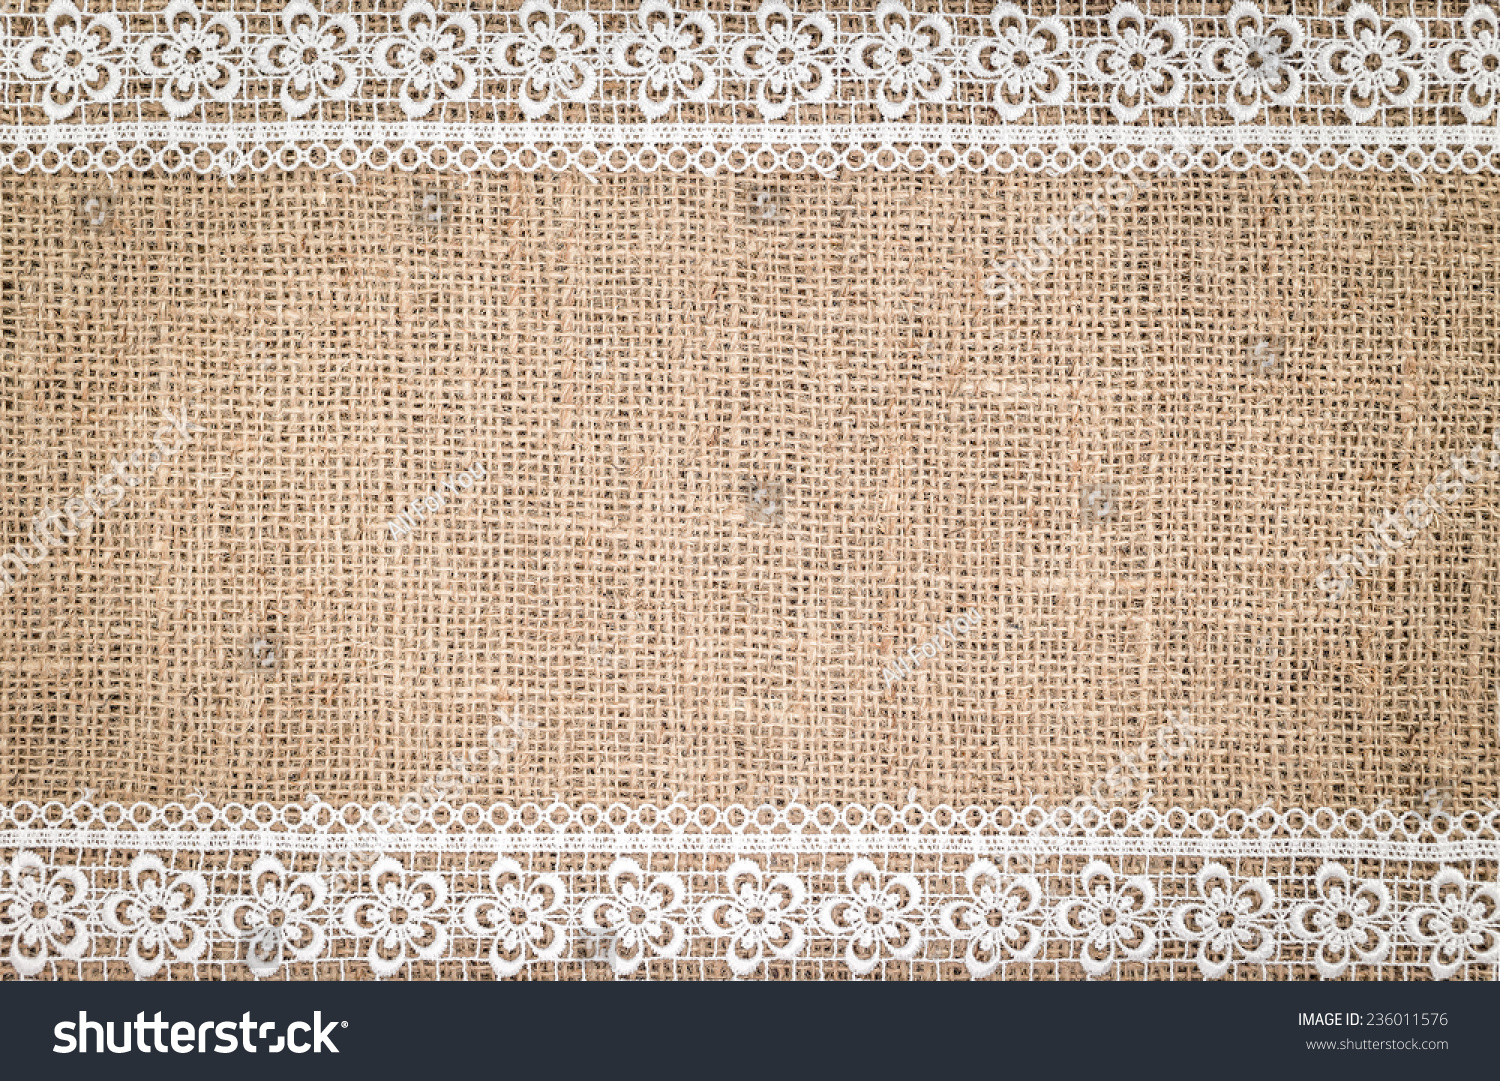 Burlap Texture With White Lace Background